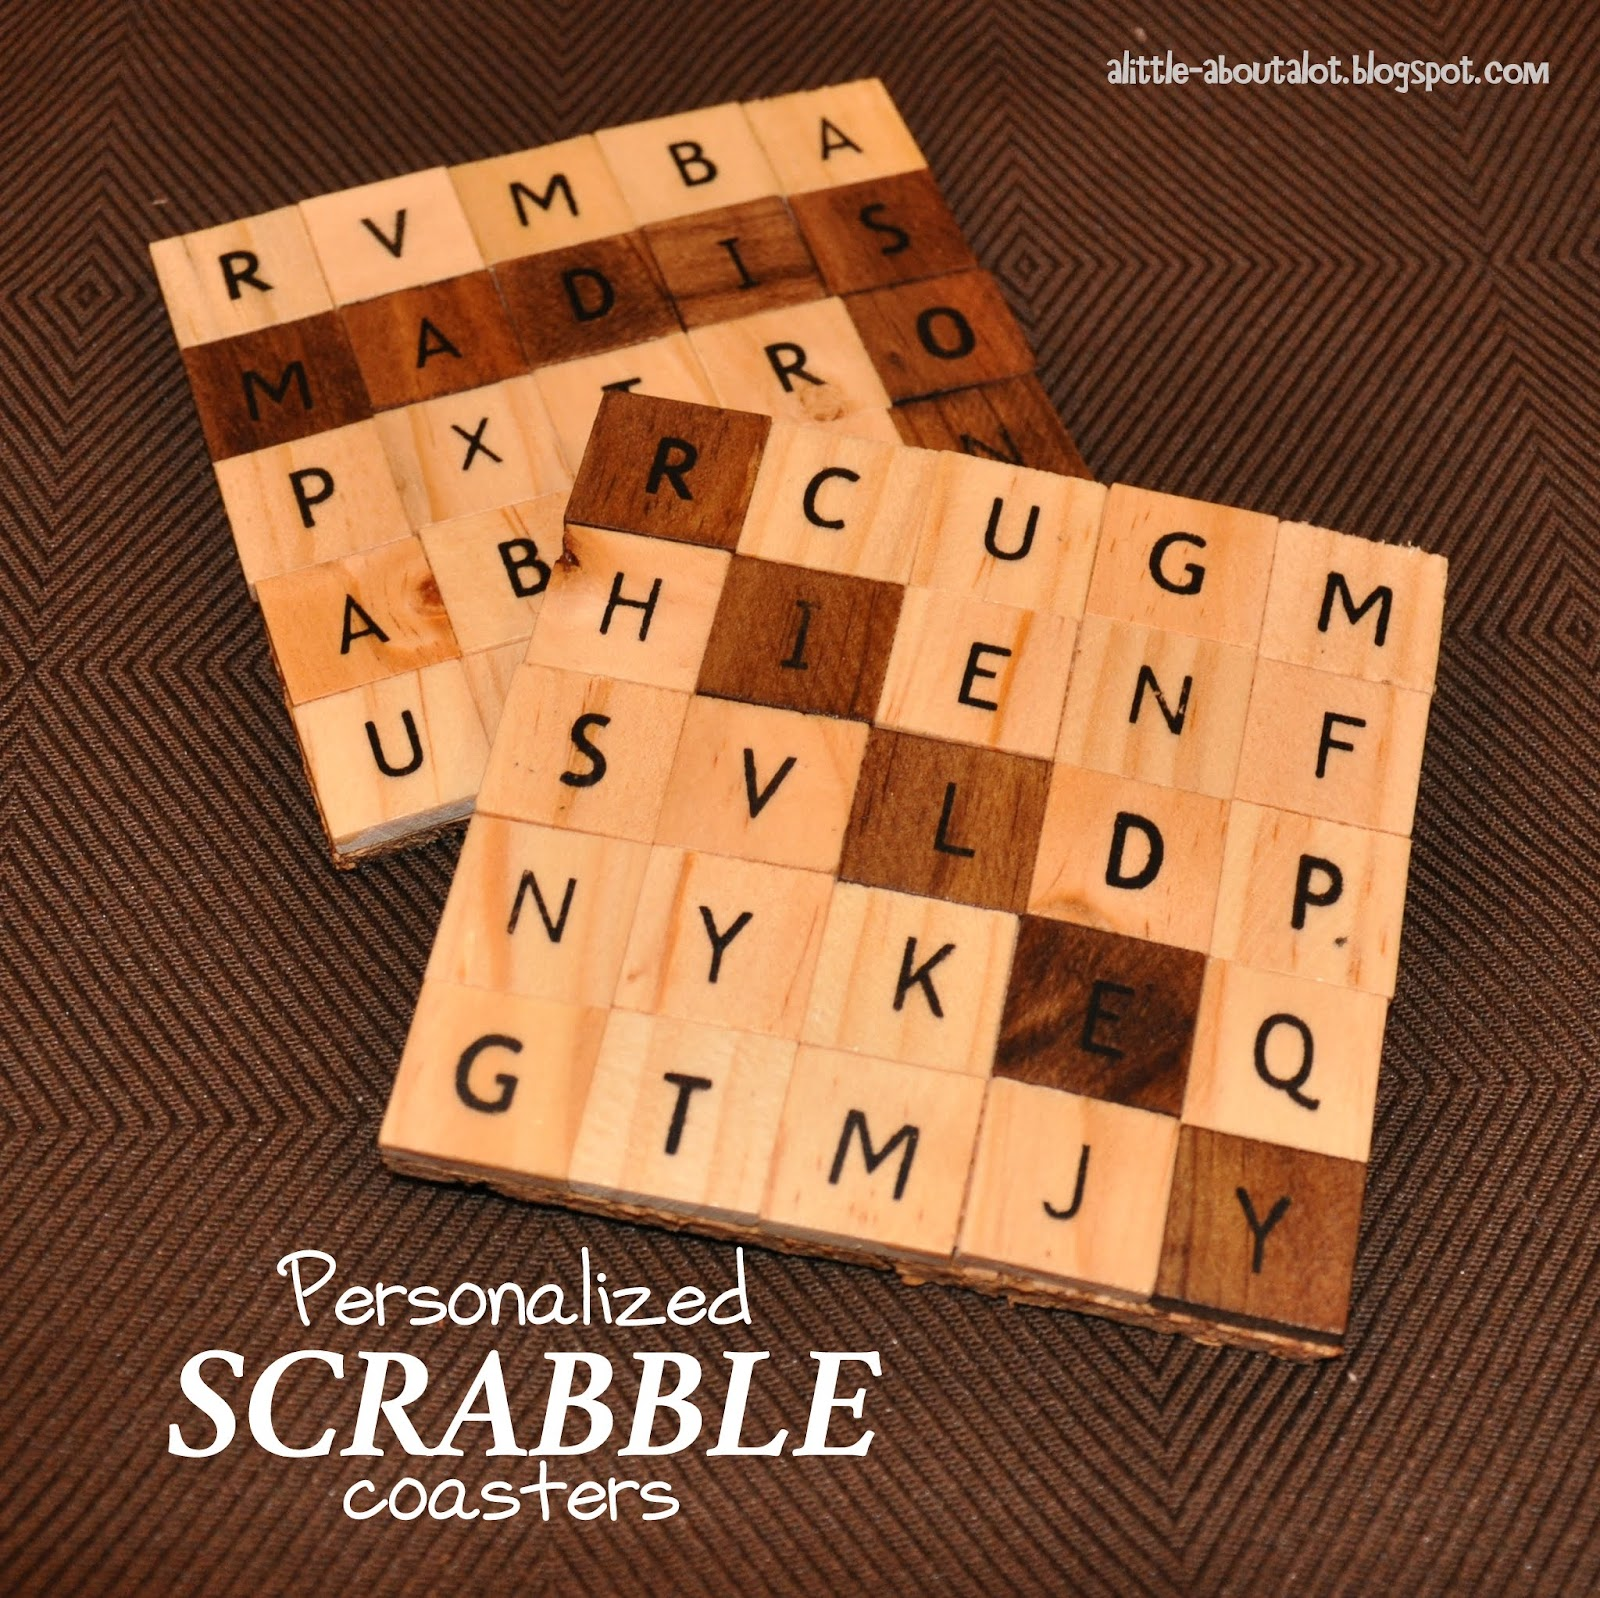 http://alittle-aboutalot.blogspot.com/2014/01/personalized-scrabble-coasters.html